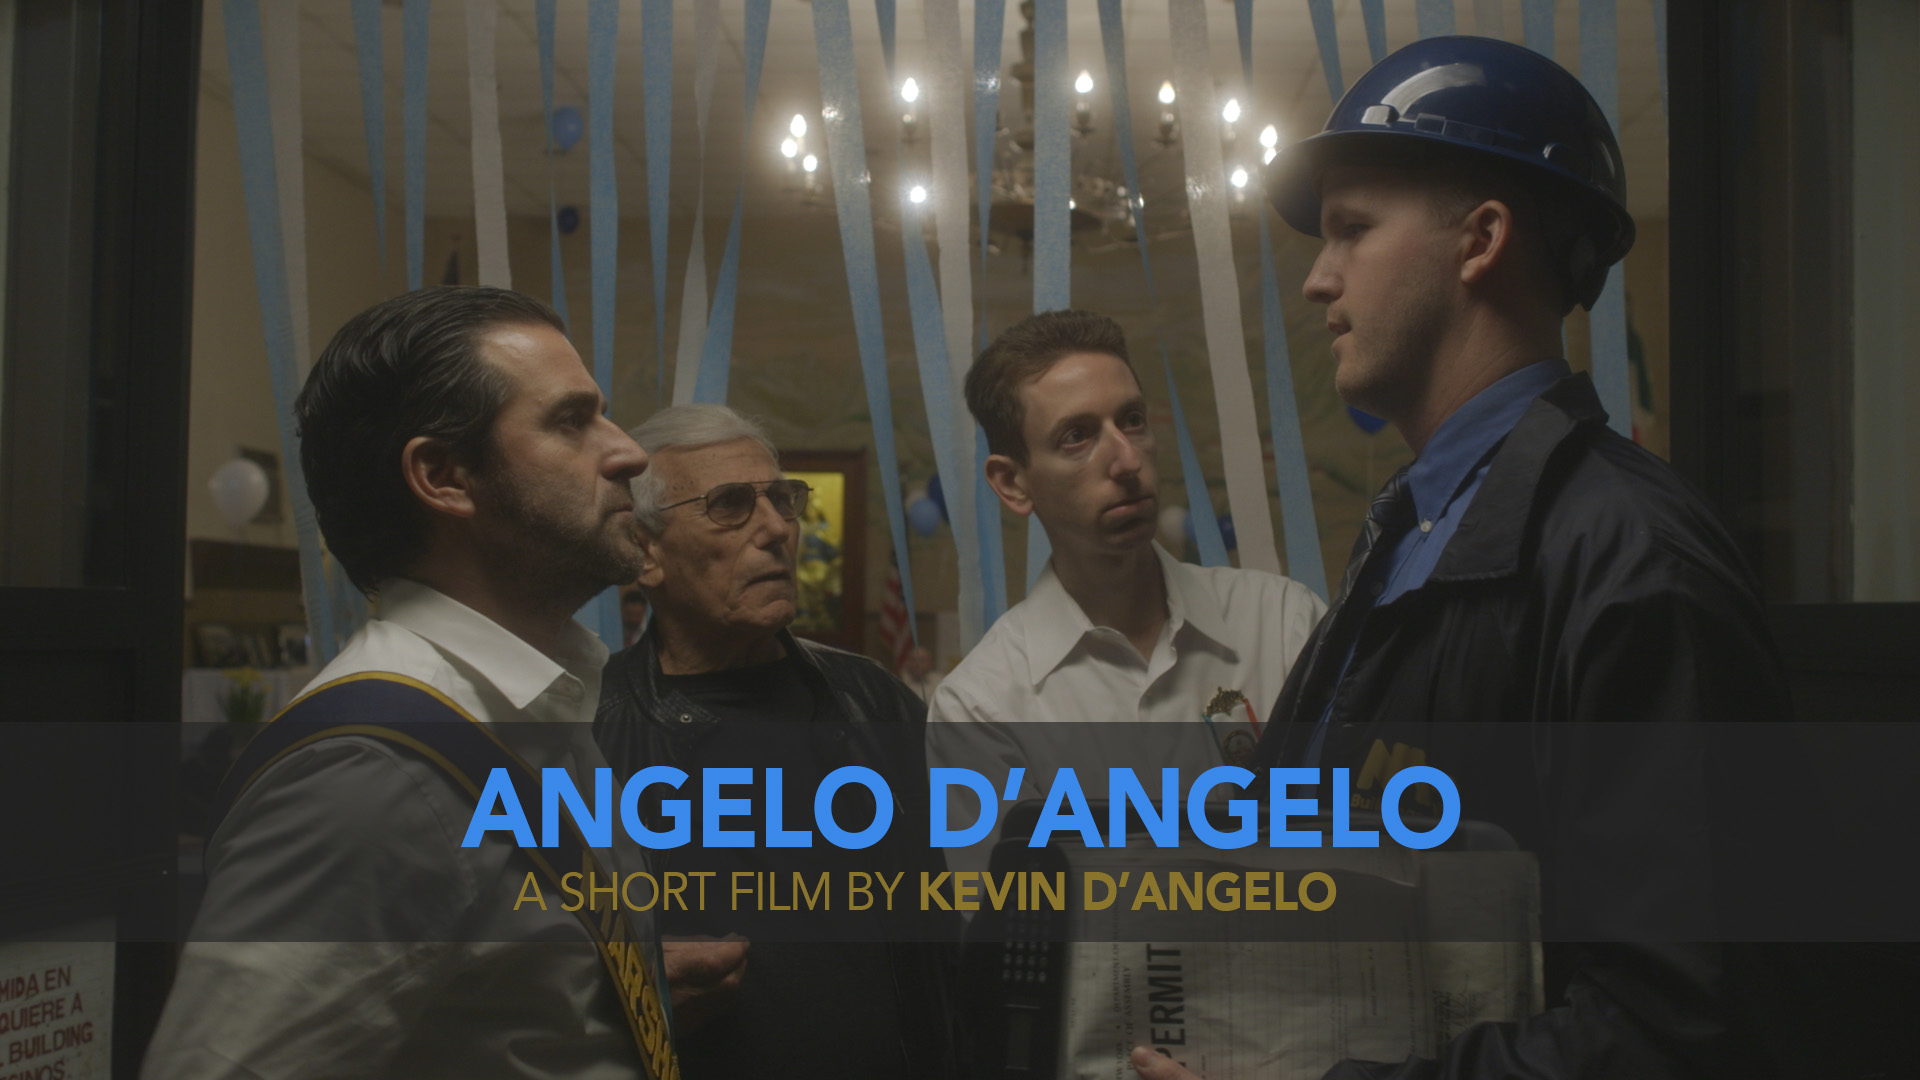 Angelo D'Angelo